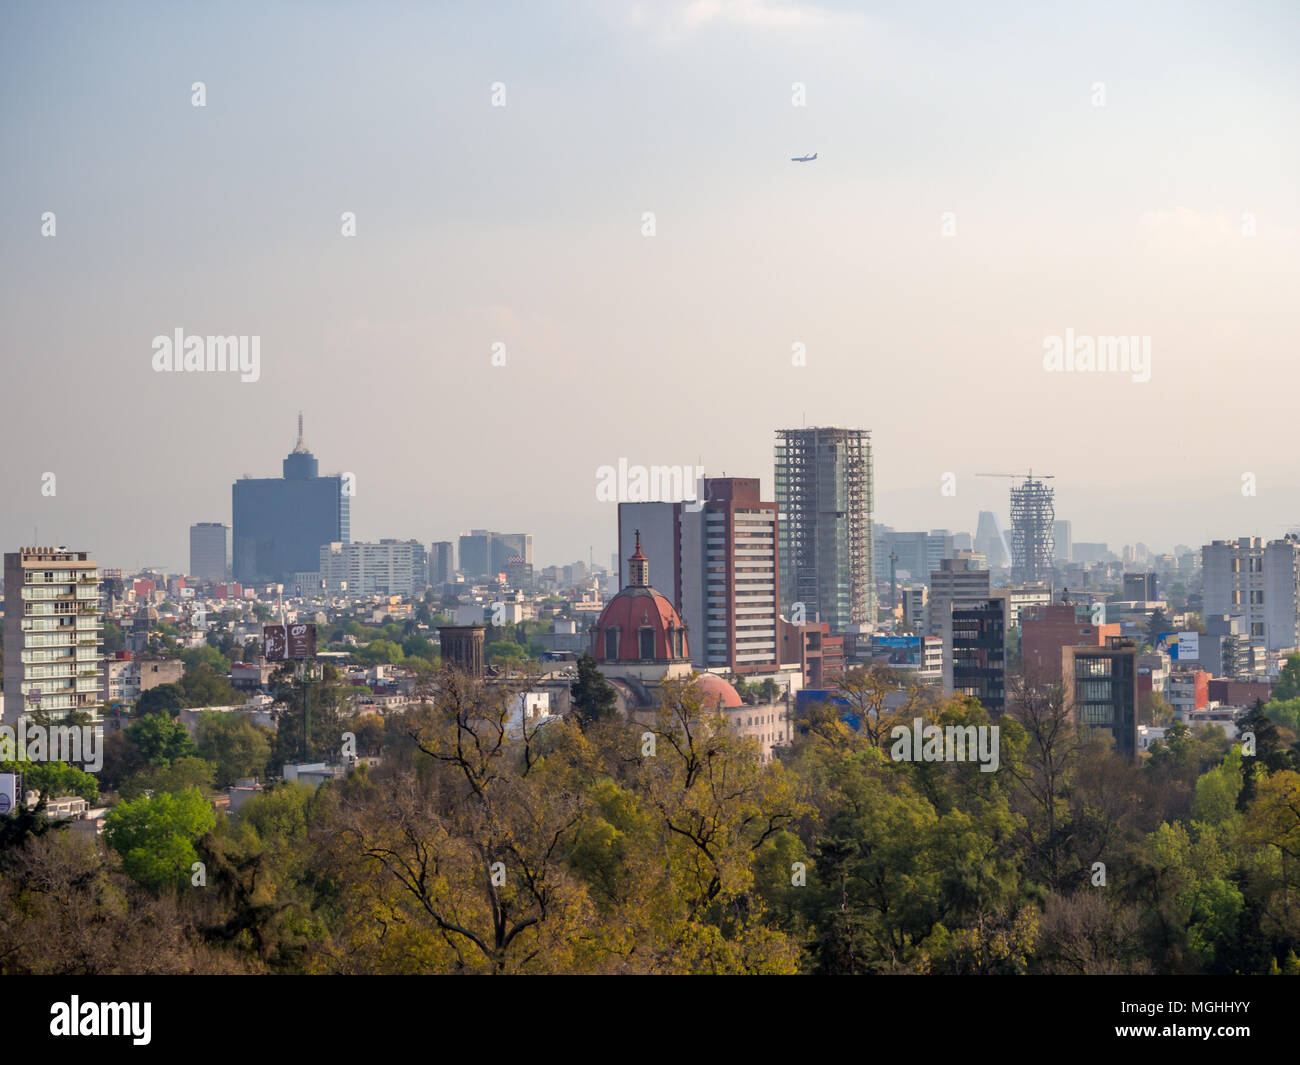 stock and mexico city essay Mexico essays mexico is an interesting place to visit there's so many things to do and places to see it's unbelievable mexico is made up of 24 states which are baja california norte, baja california sur, sonora, chihuahua, coahuila, nuevo leon, durango, sinaloa, zacatecas, tamaulipas, sa.